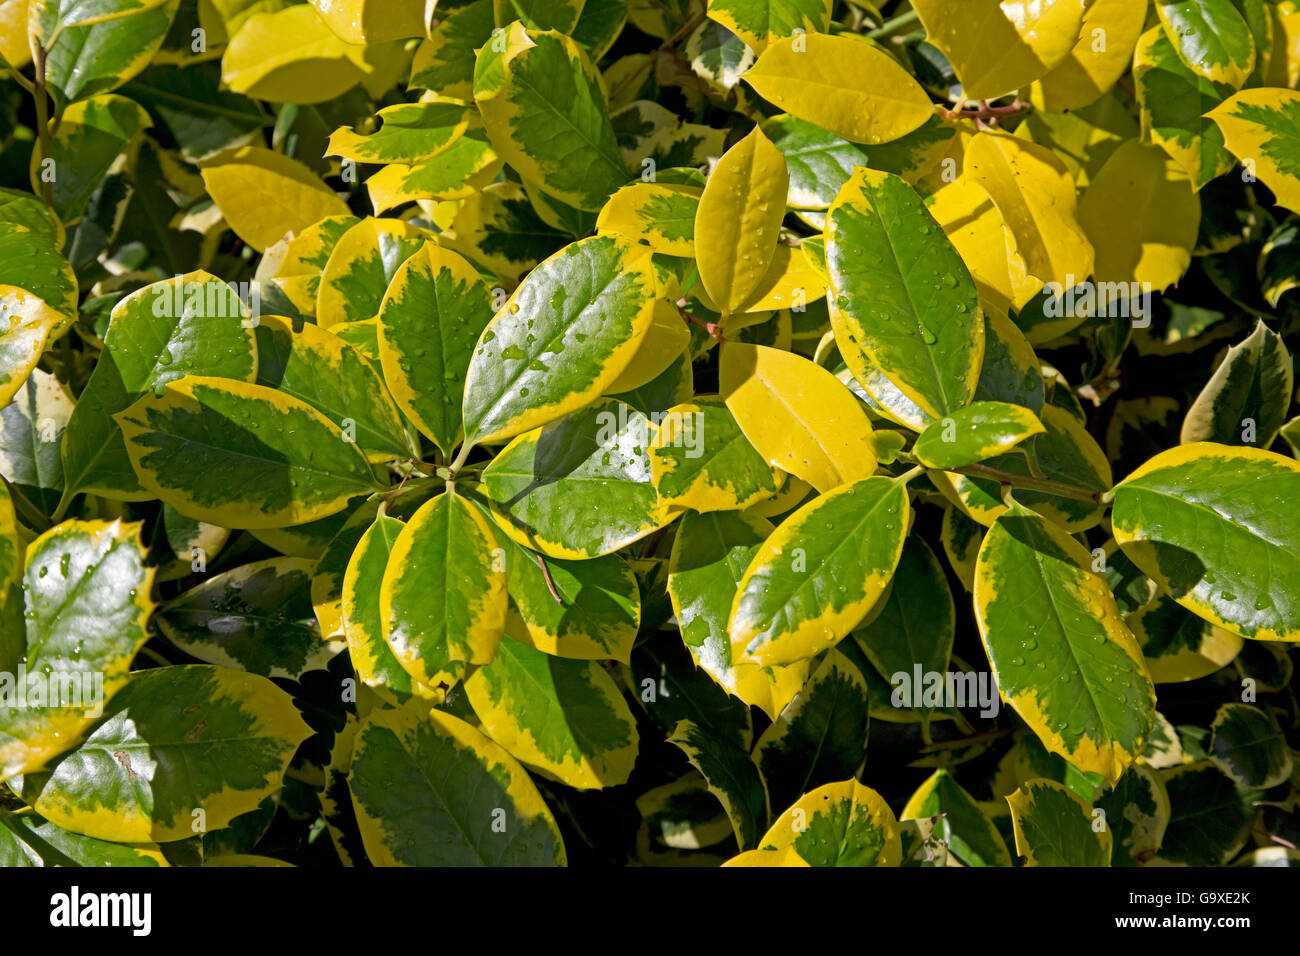 Shrub with yellow and green waxy leaves Kiffsgate Court Gardens Mickleton Cotswolds UK Stock Photo